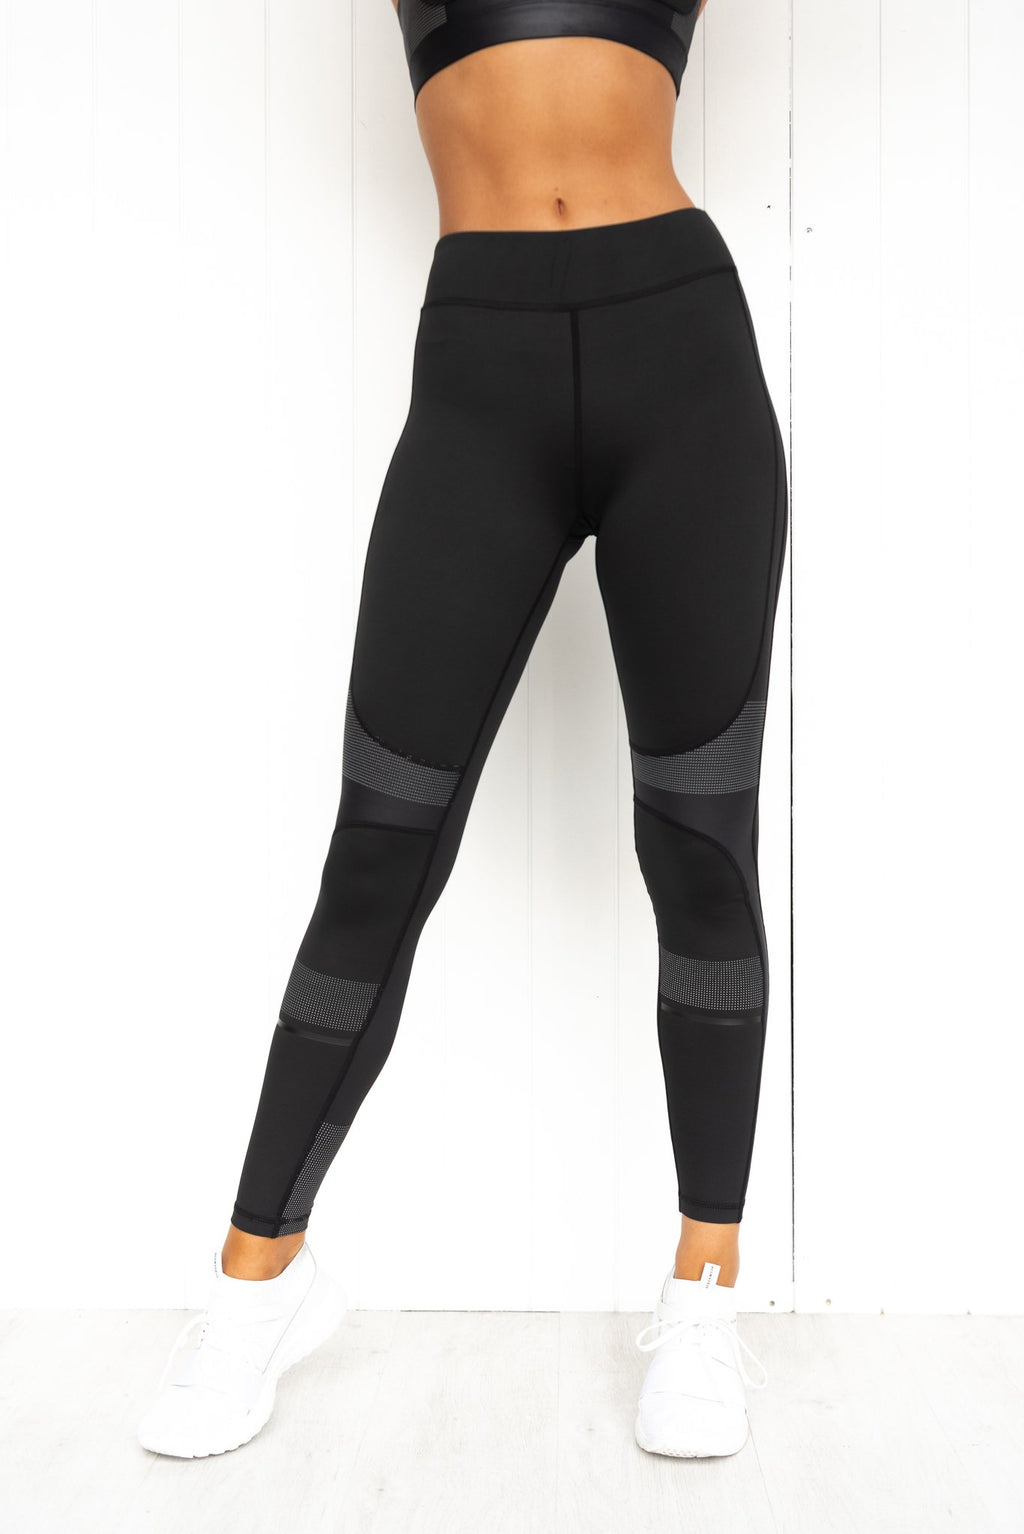 Harper Tarmac Black Leggings - PURE DASH